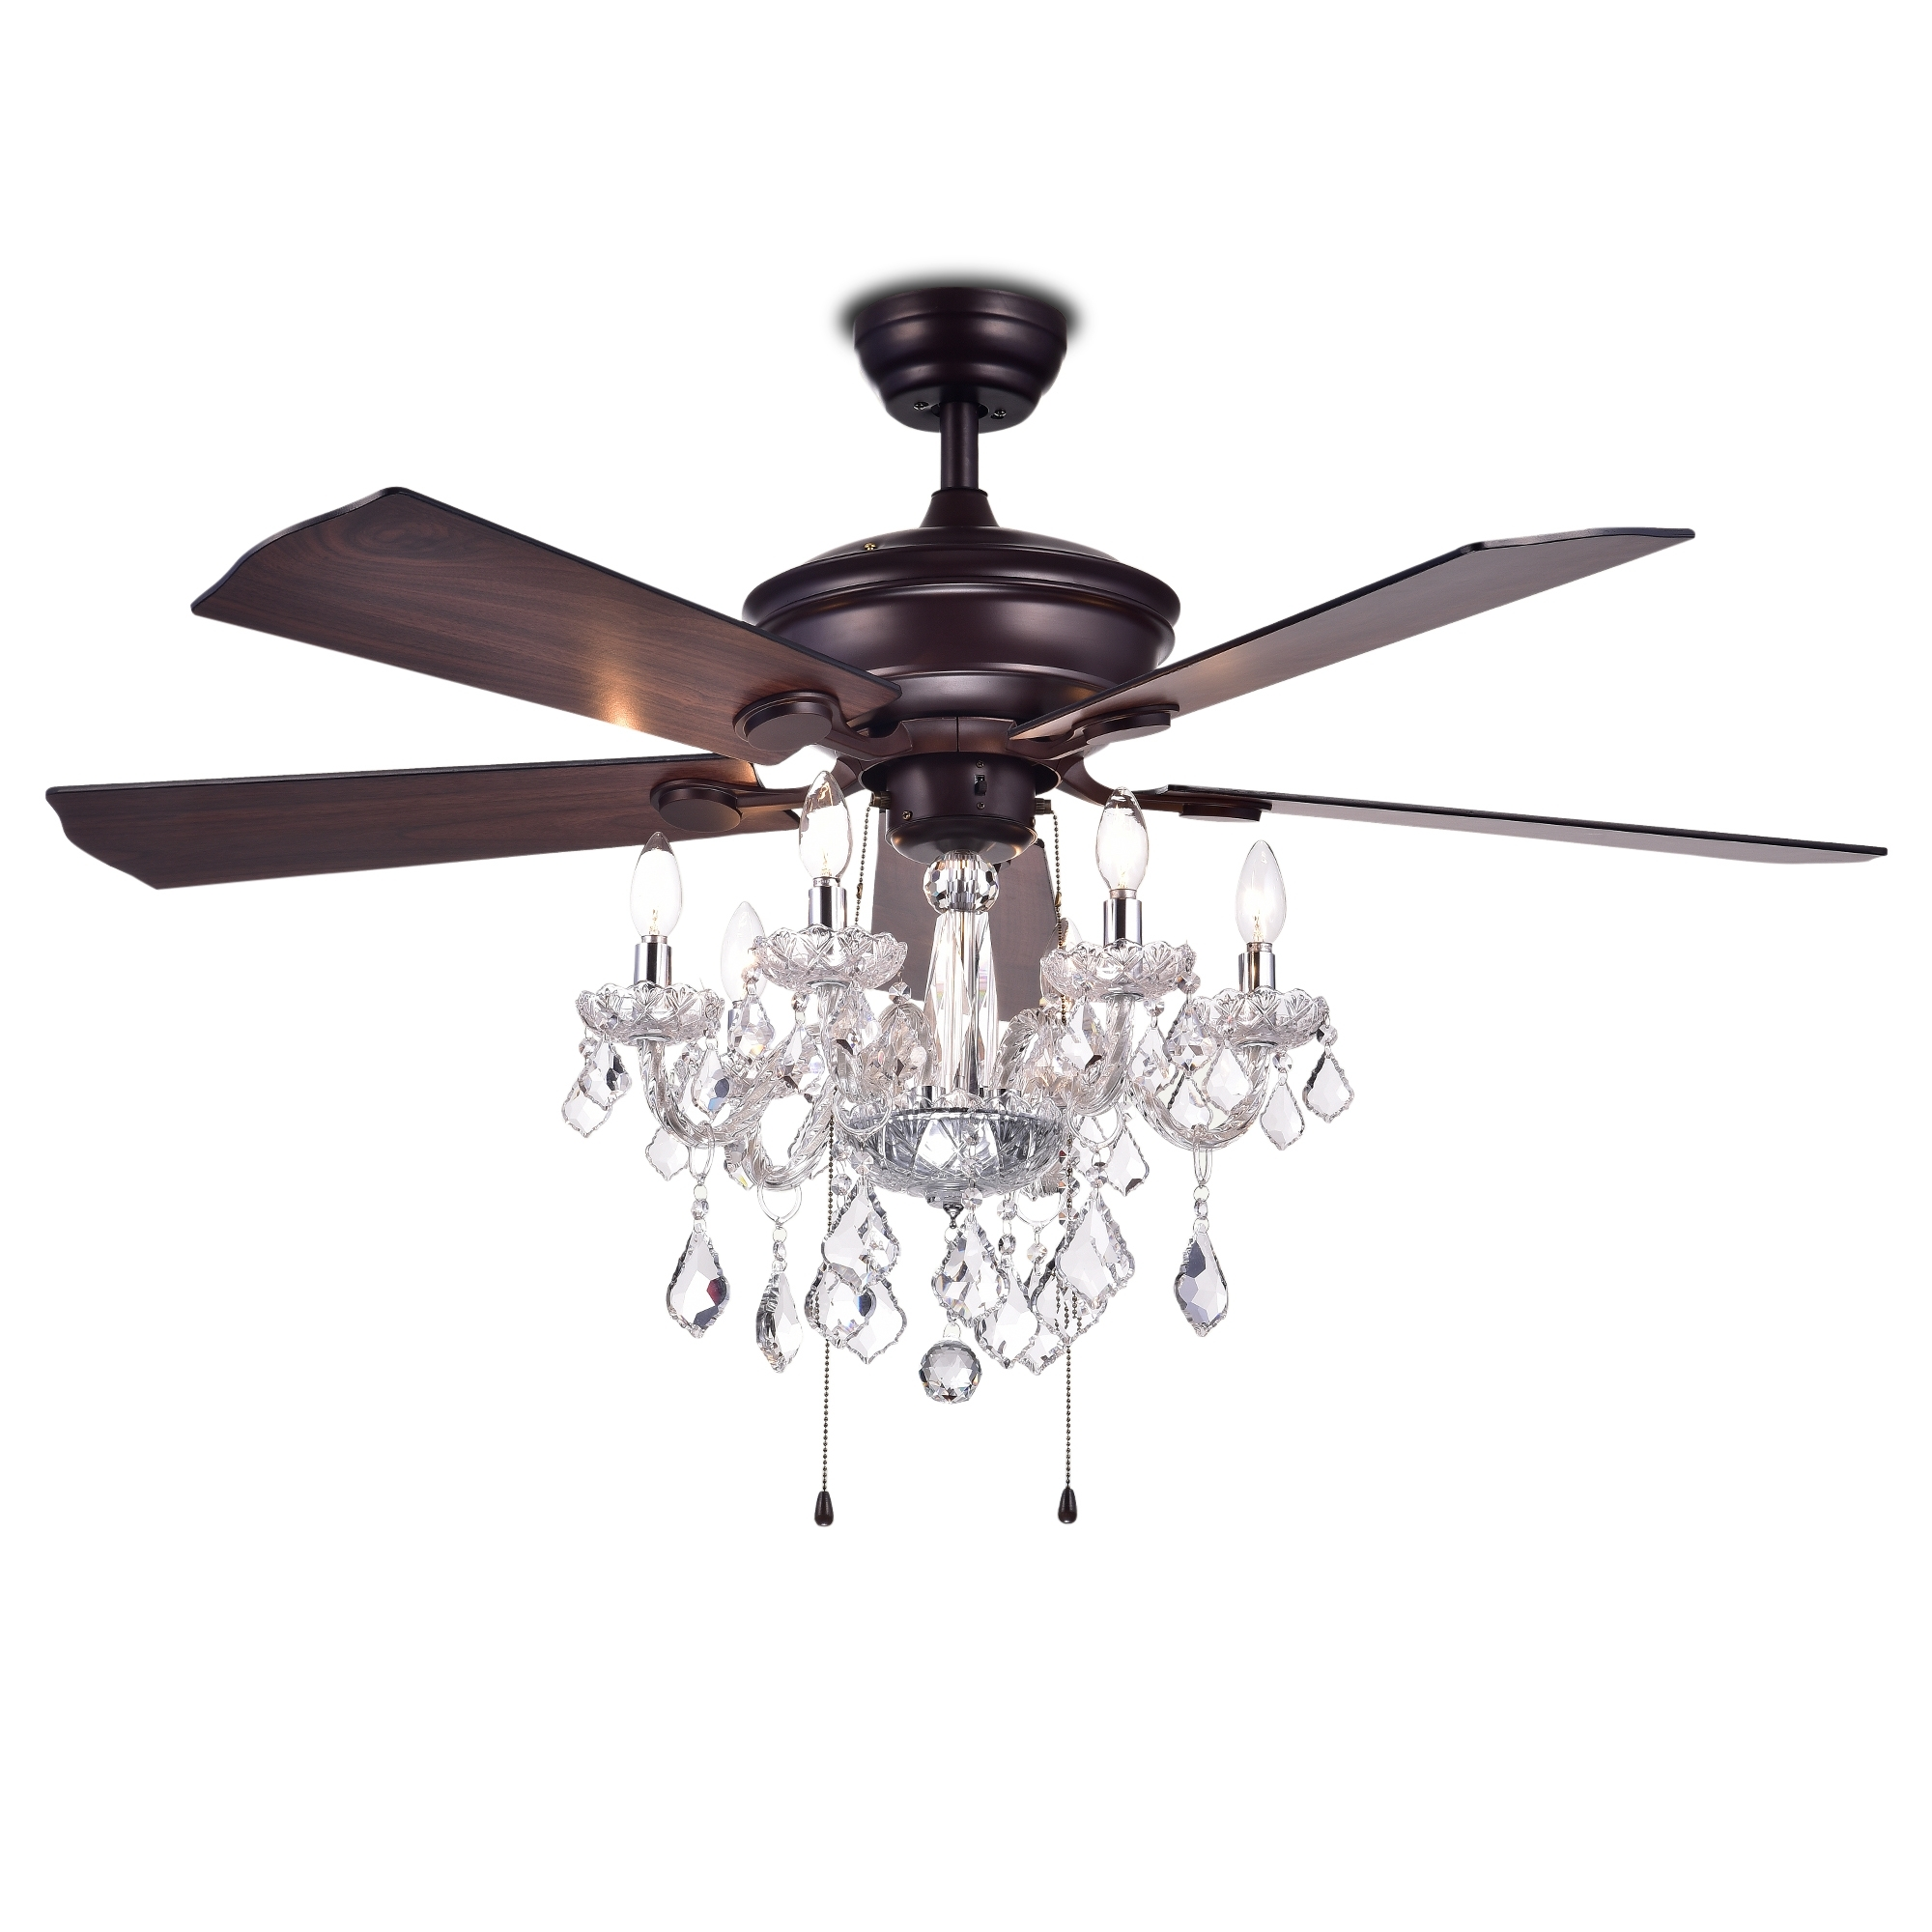 Havorand 52 Inch 5 Blade Ceiling Fan Crystal Chandelier – Walmart Within Preferred Outdoor Ceiling Fan With Brake (View 16 of 20)